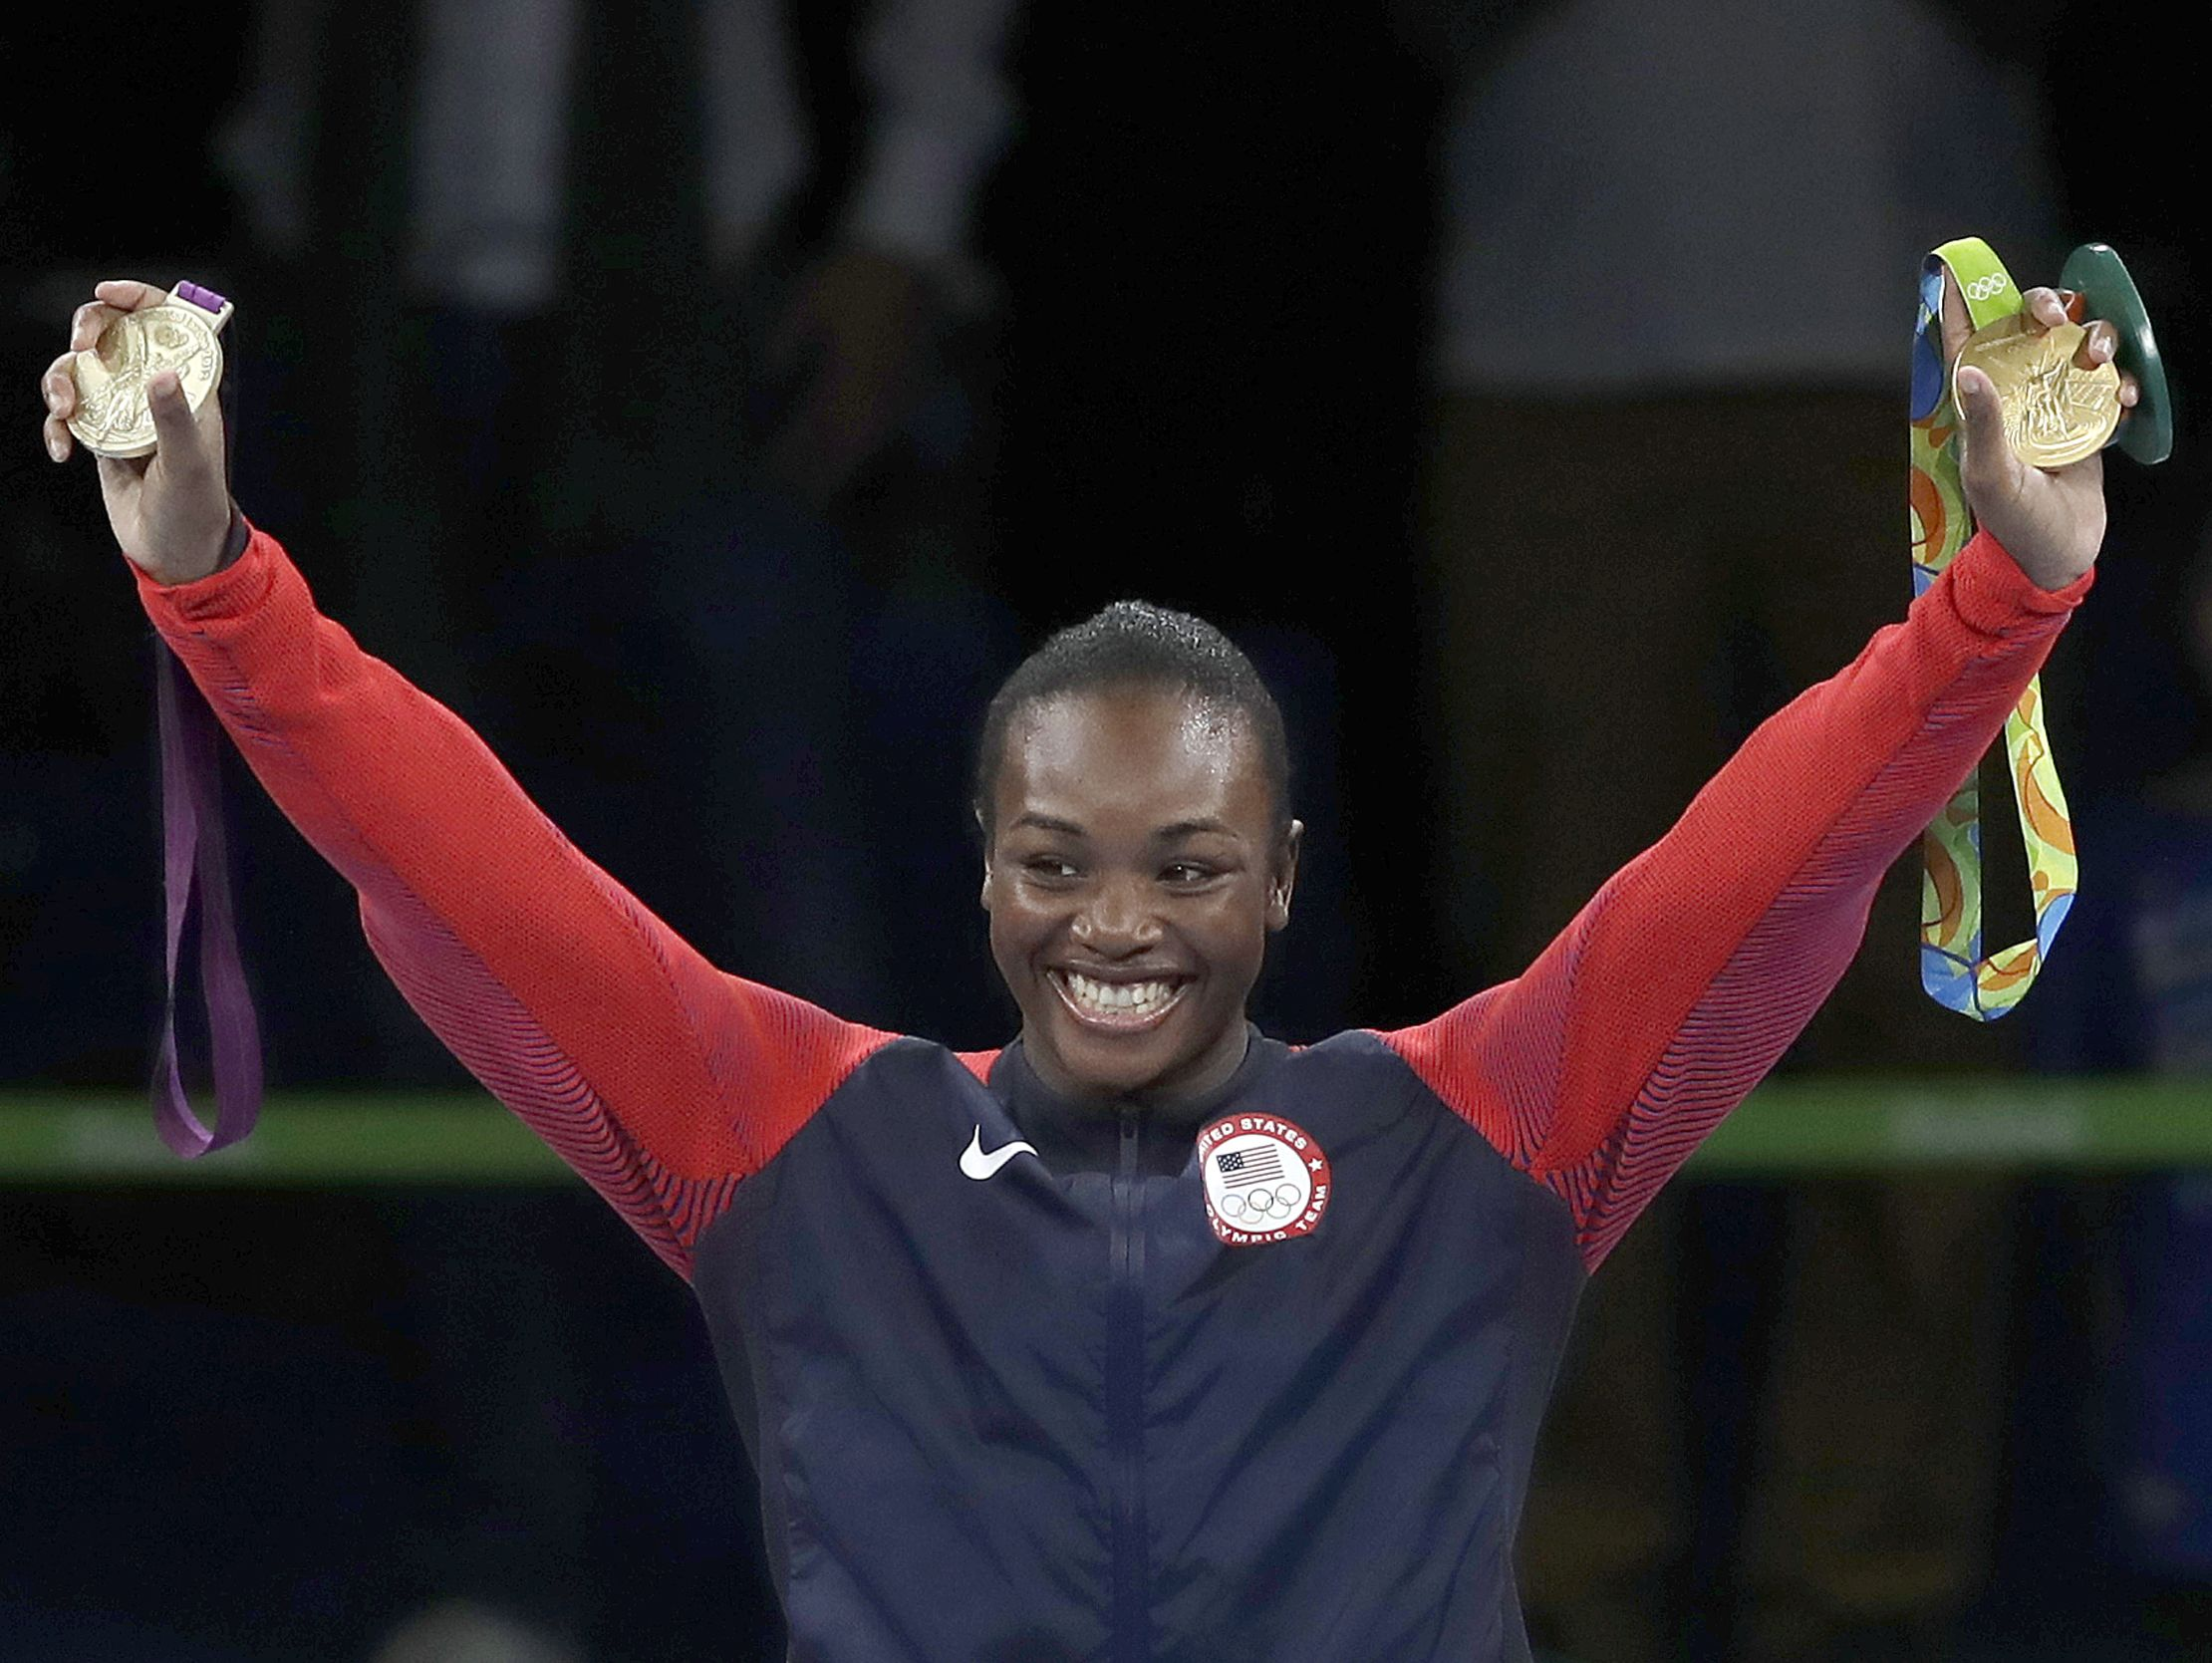 United States' Claressa Shields displays her gold medals - from London and from Rio - for the women's middleweight 75-kg boxing at the 2016 Summer Olympics in Rio de Janeiro, Brazil, Sunday, Aug. 21, 2016.